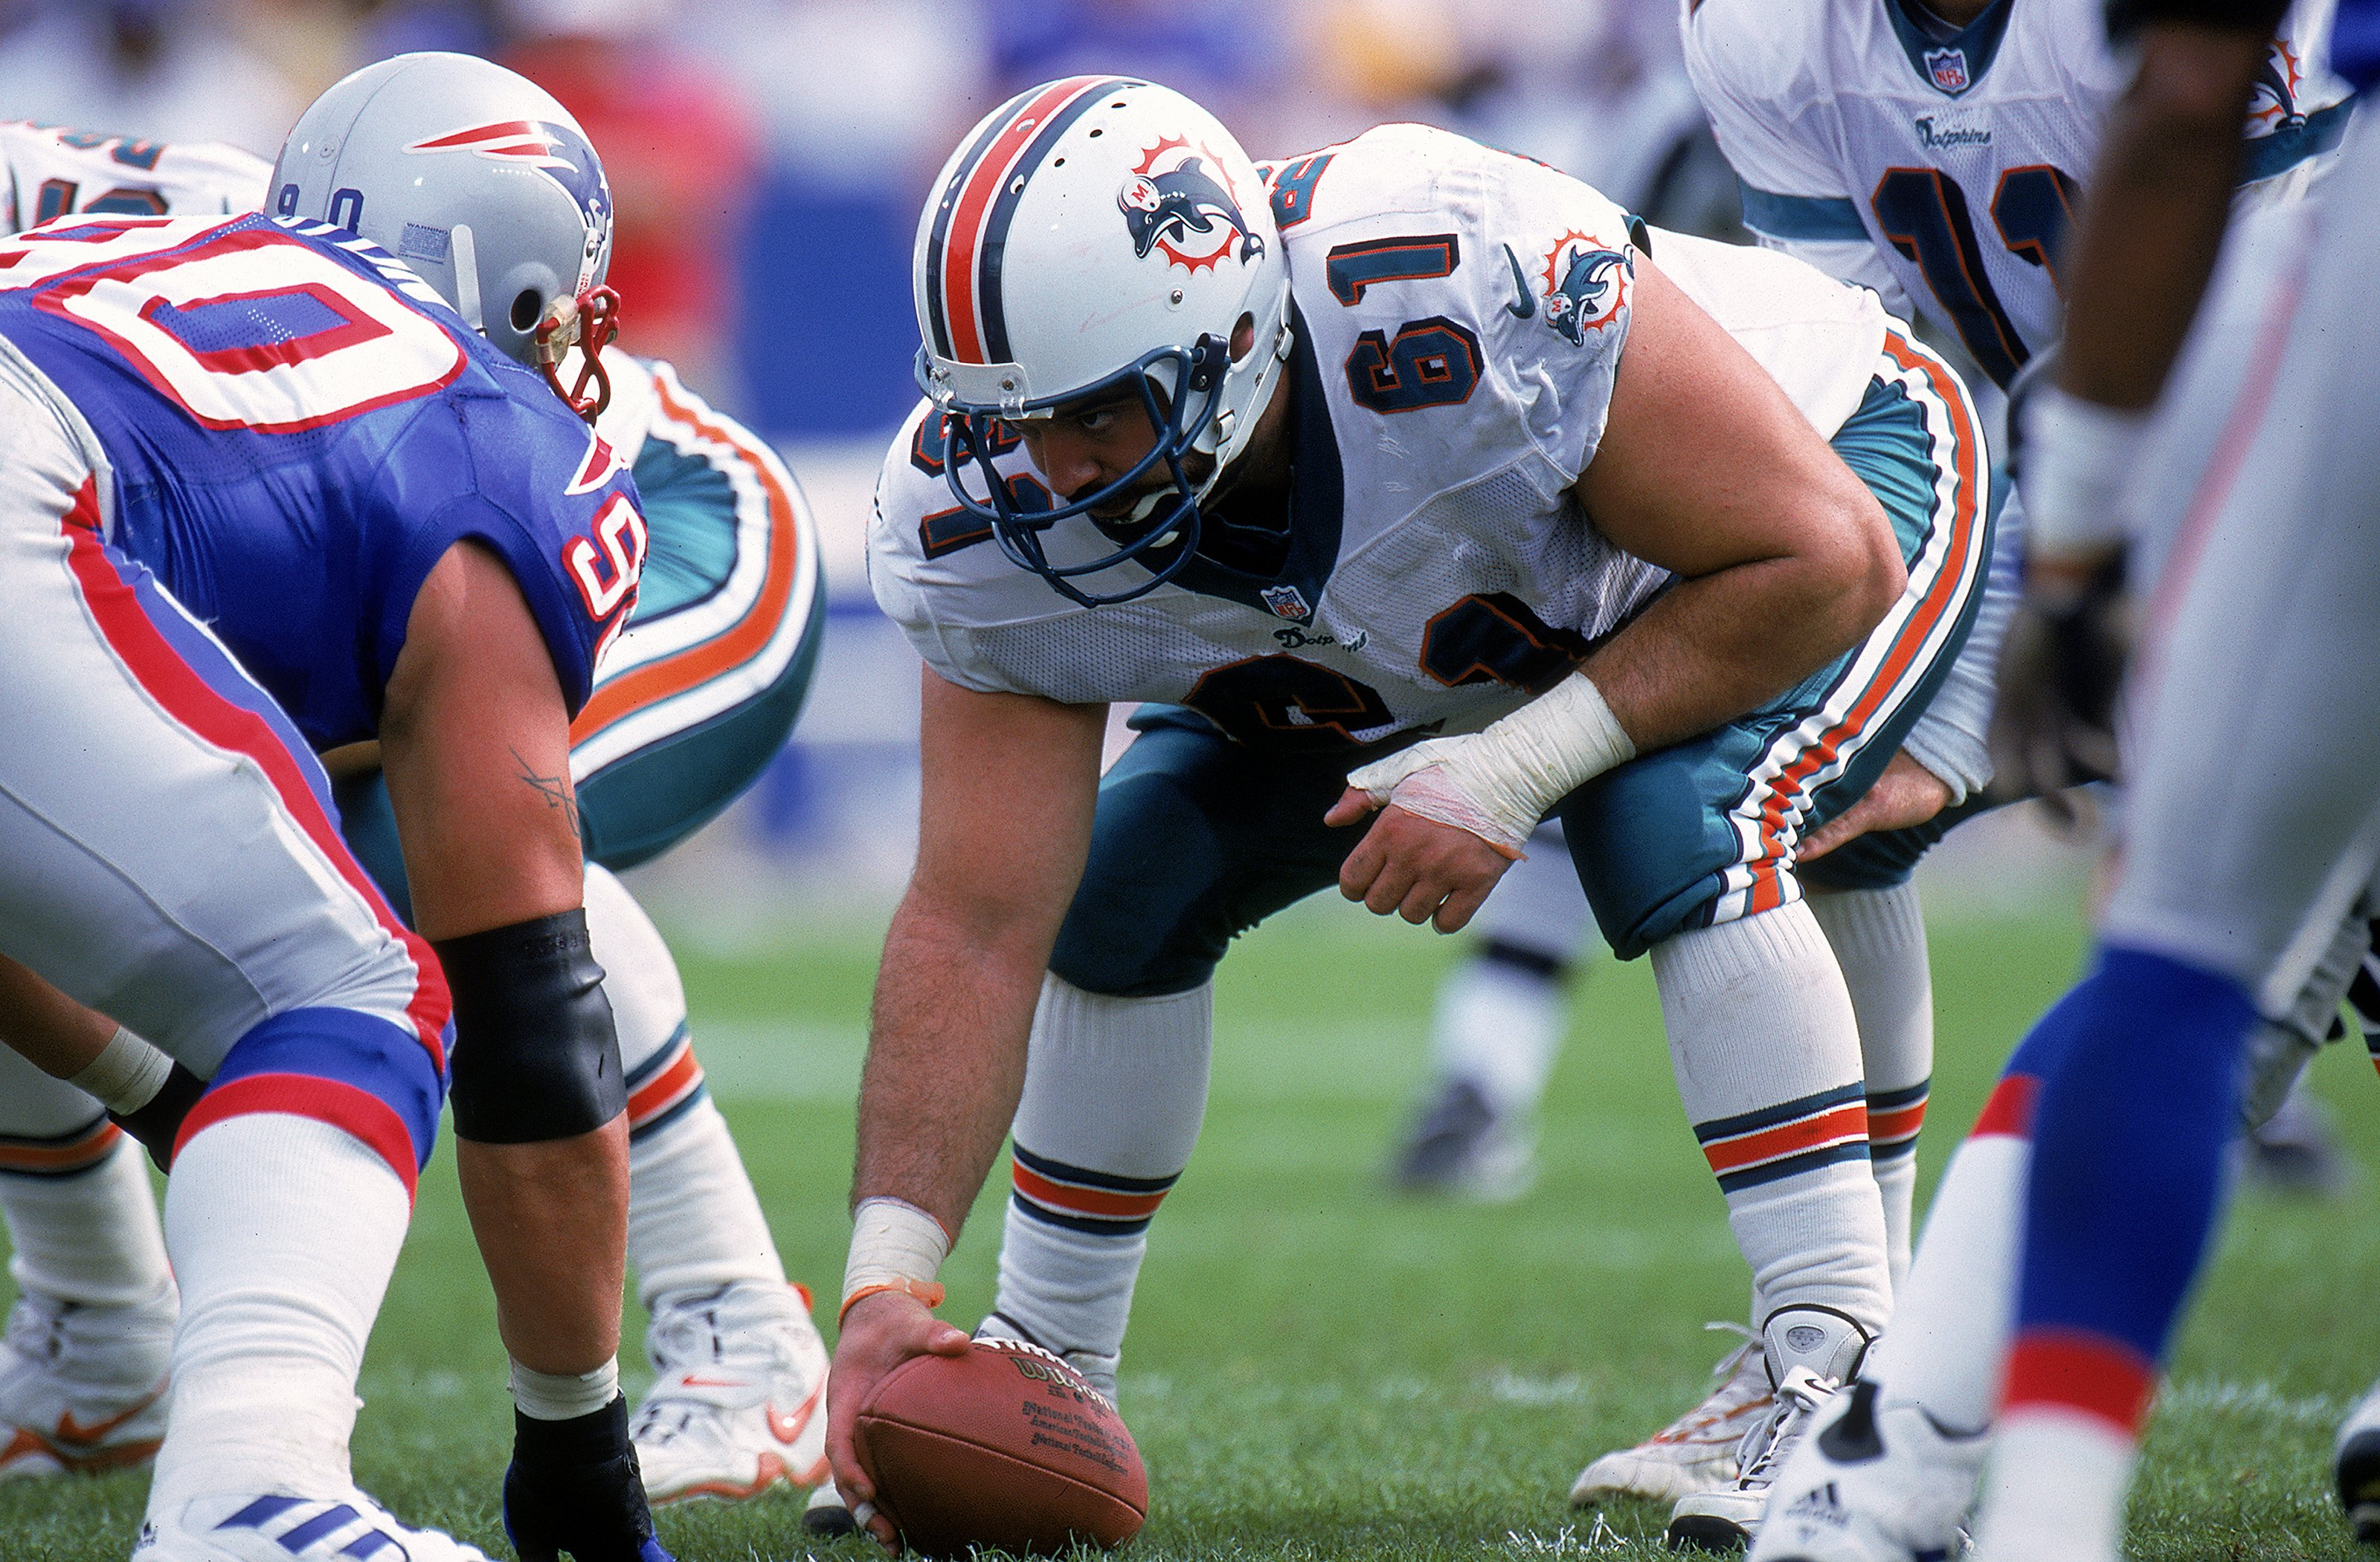 17 Oct 1999: Tim Ruddy #61 of the Miami Dolphins gets ready to hike the ball during the game against the New England Patriots at the Foxboro Stadium in Foxboro, Massachusetts. The Dolphins defeated the Patriots 31-30.